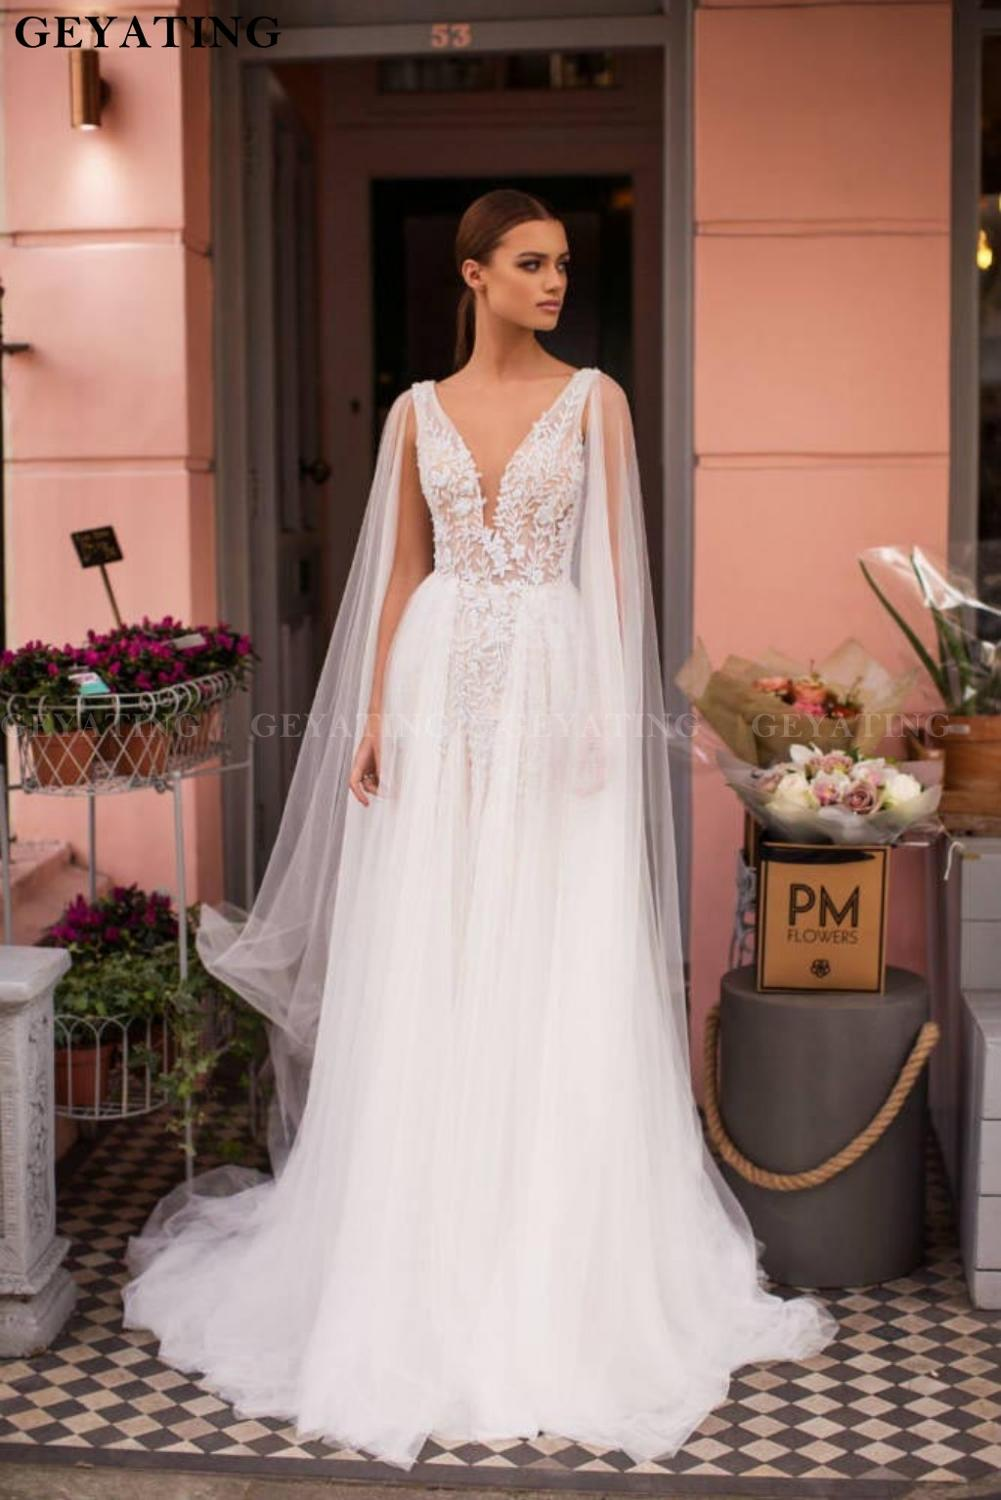 2020 Deep V Neck Backless Wedding Dress With Cape White Tulle Lace Appliques Beaded Pearls A Line Bridal Gowns Vestidos De Novia